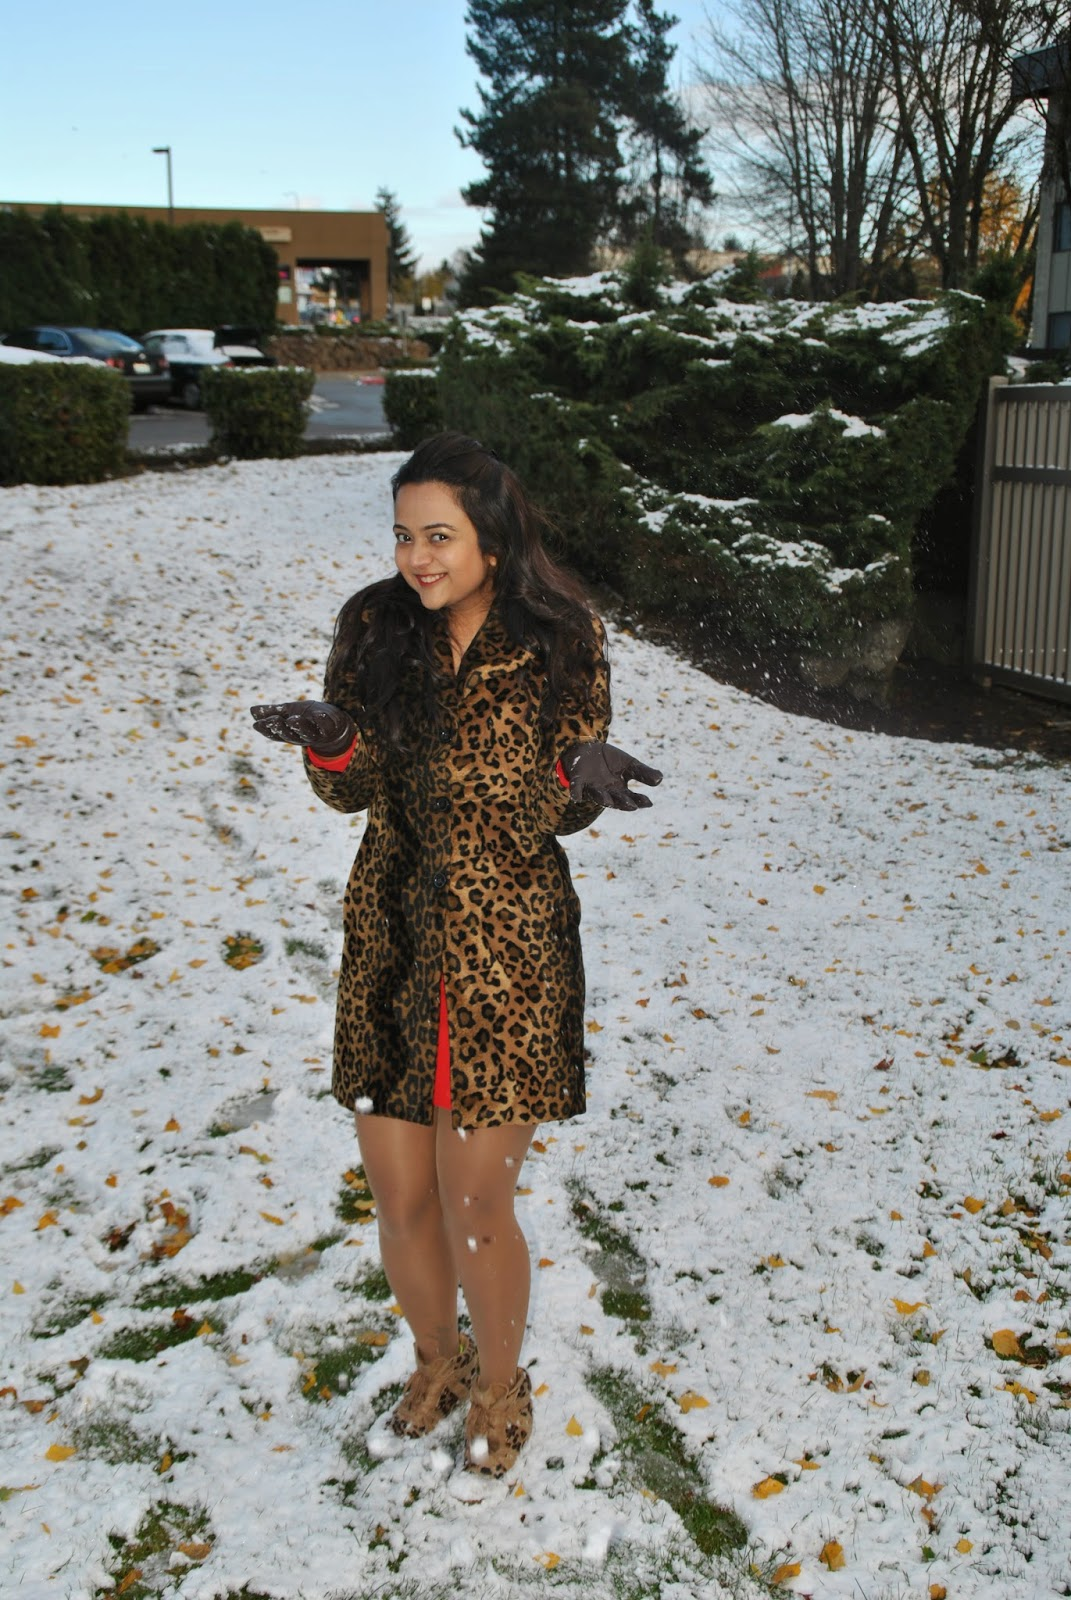 Leopard printed coats, Designer leopard printed jacket, Fashionable leopard prints, Indian Lady with a leopard printed jacket, Seattle winter fashion, beautiful girl in snow